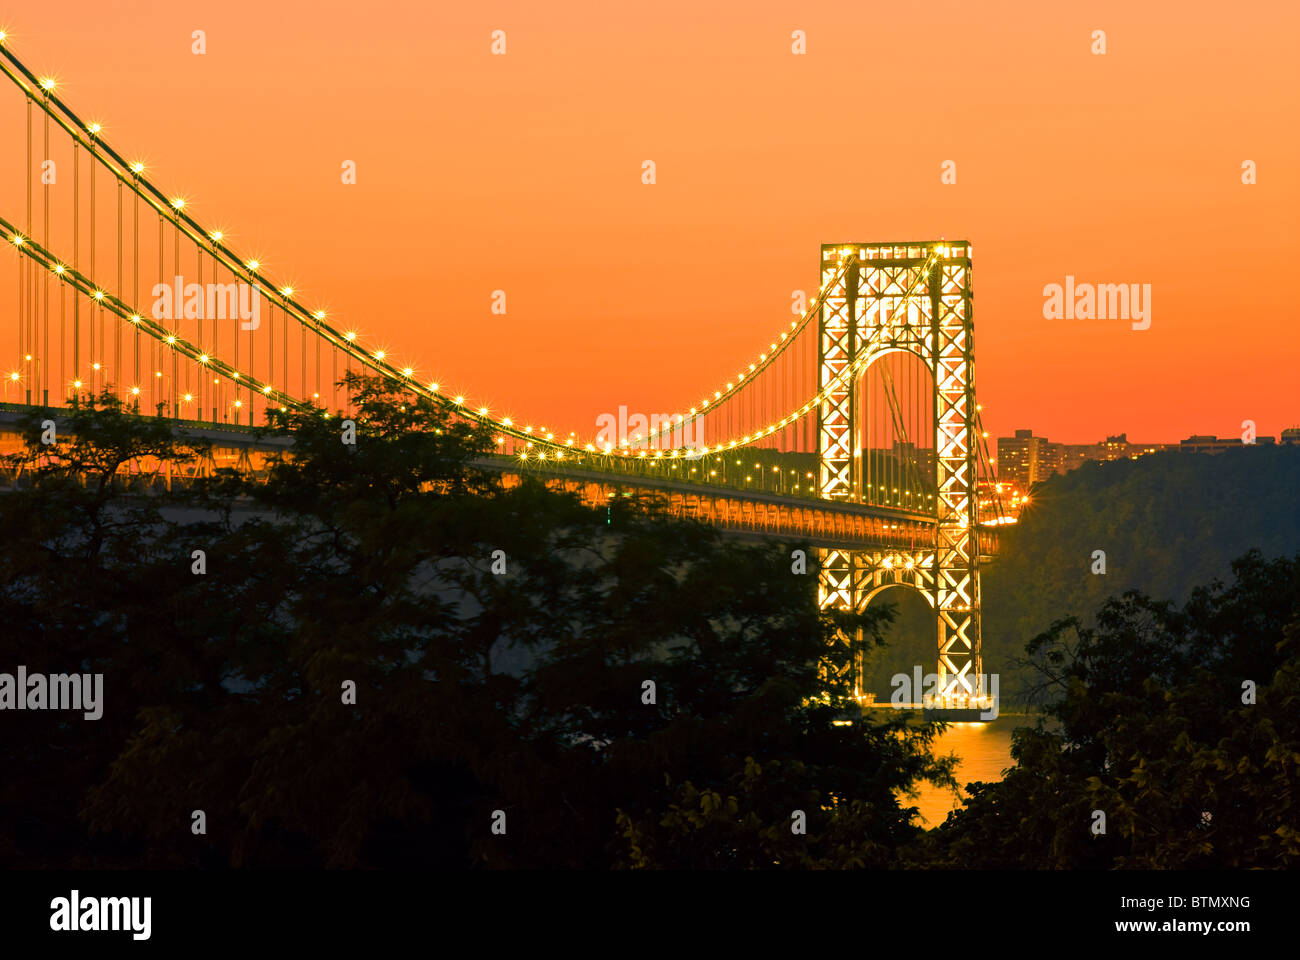 George Washington Bridge New Jersey, at sunset from New York City - Stock Image